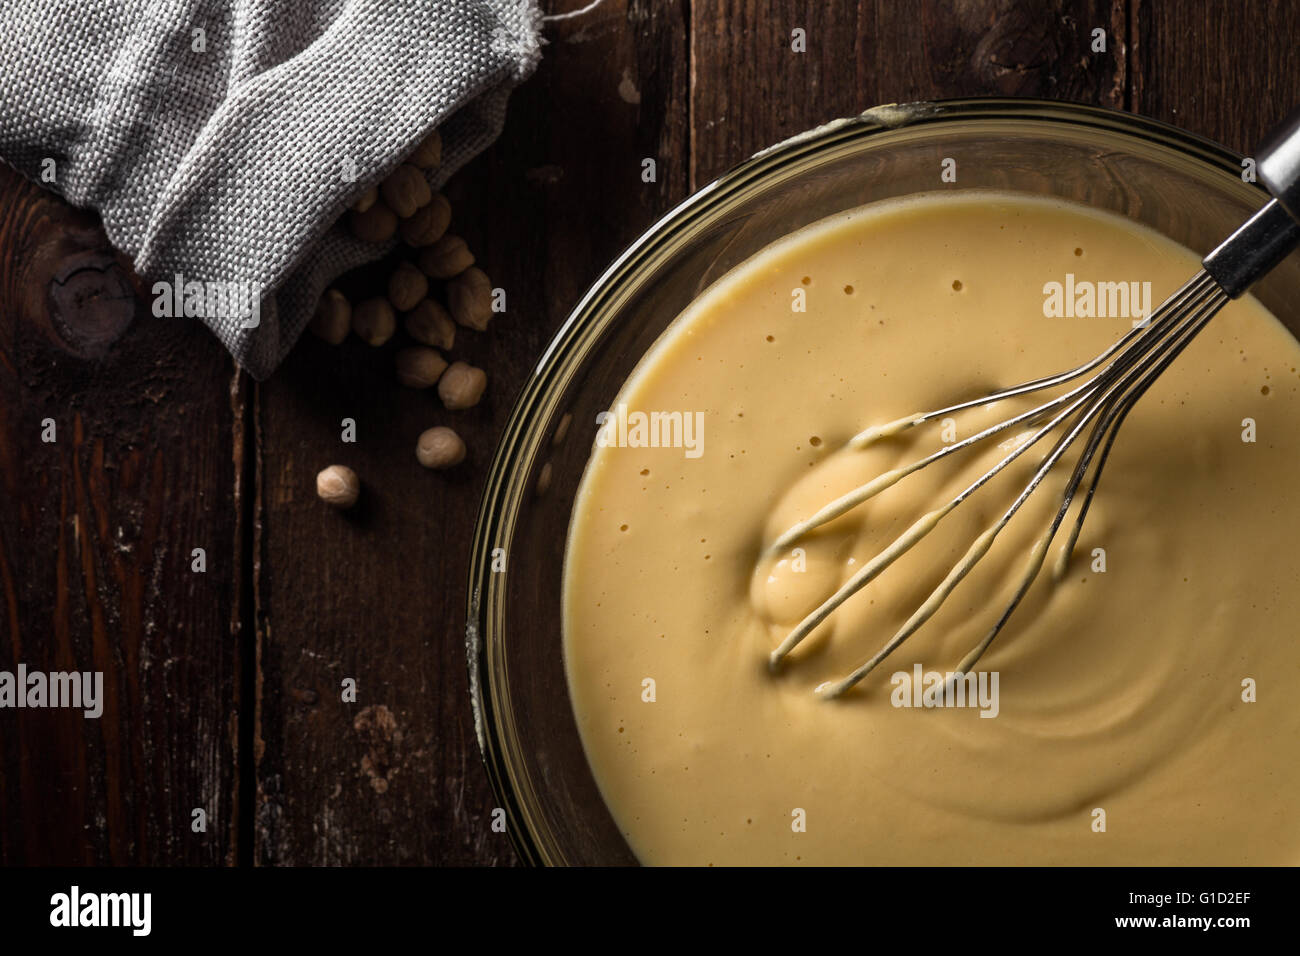 Chickpea Batter in a Bowl with a Whisk on Wood Stock Photo